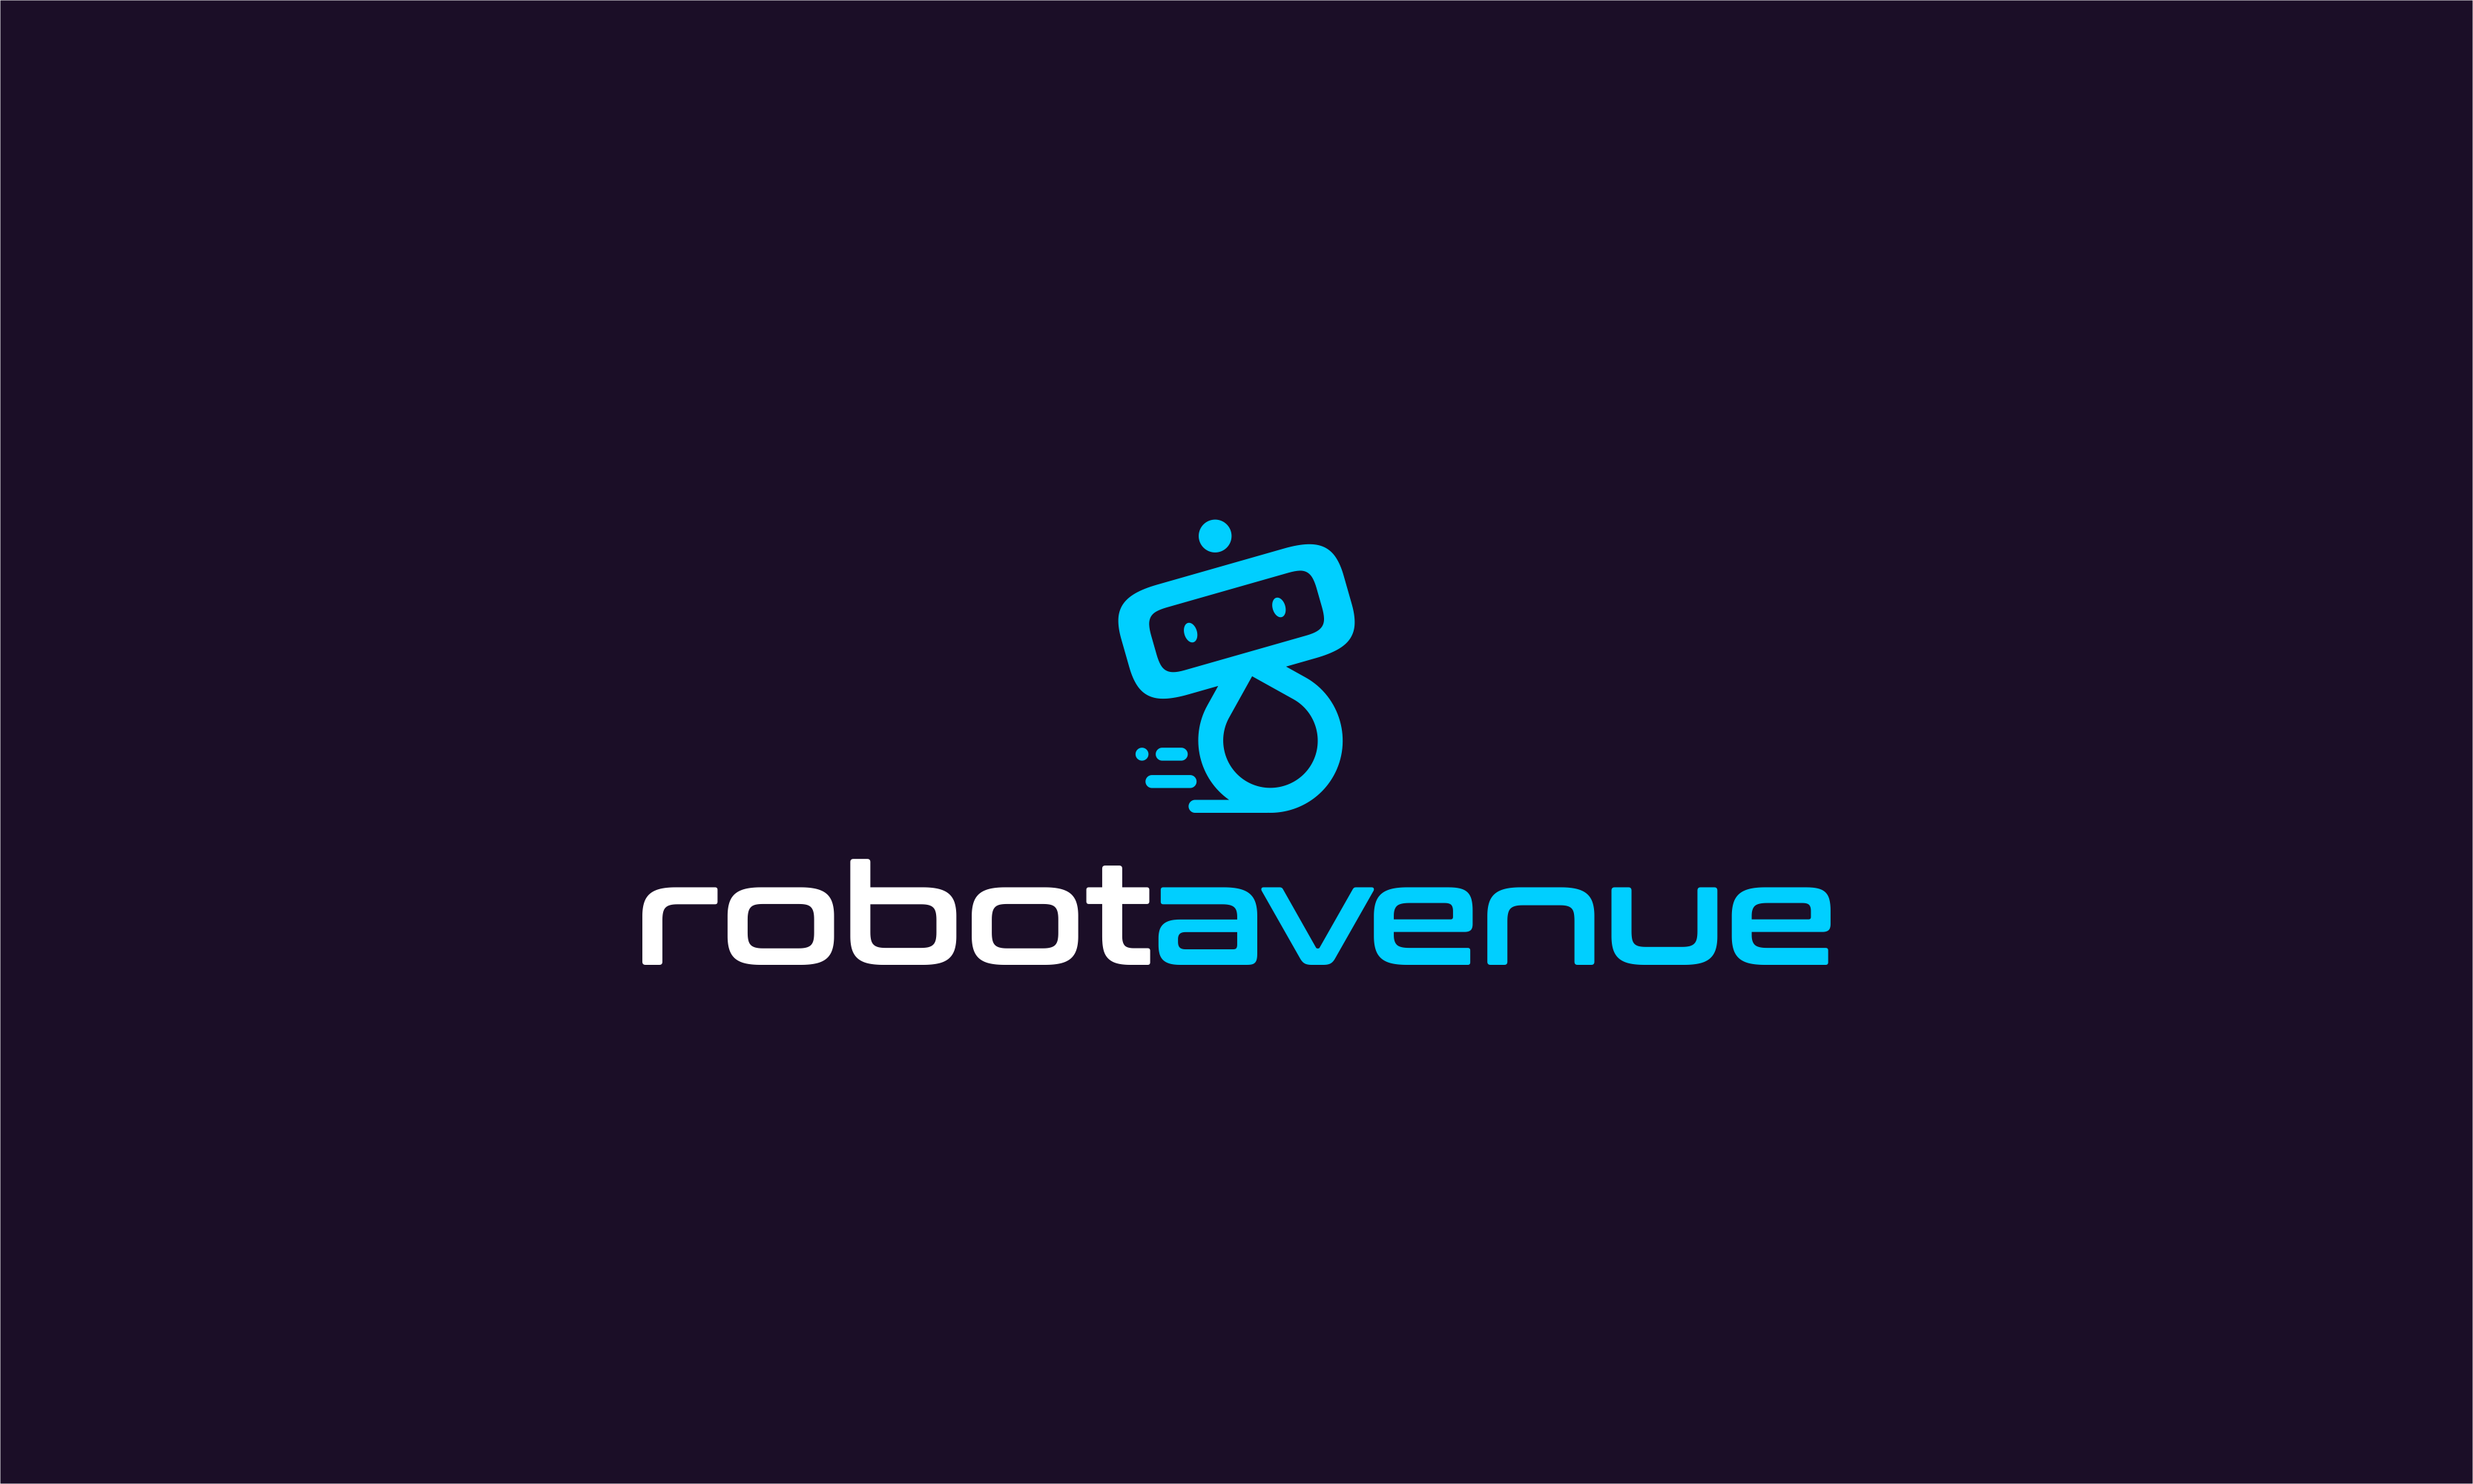 Robotavenue